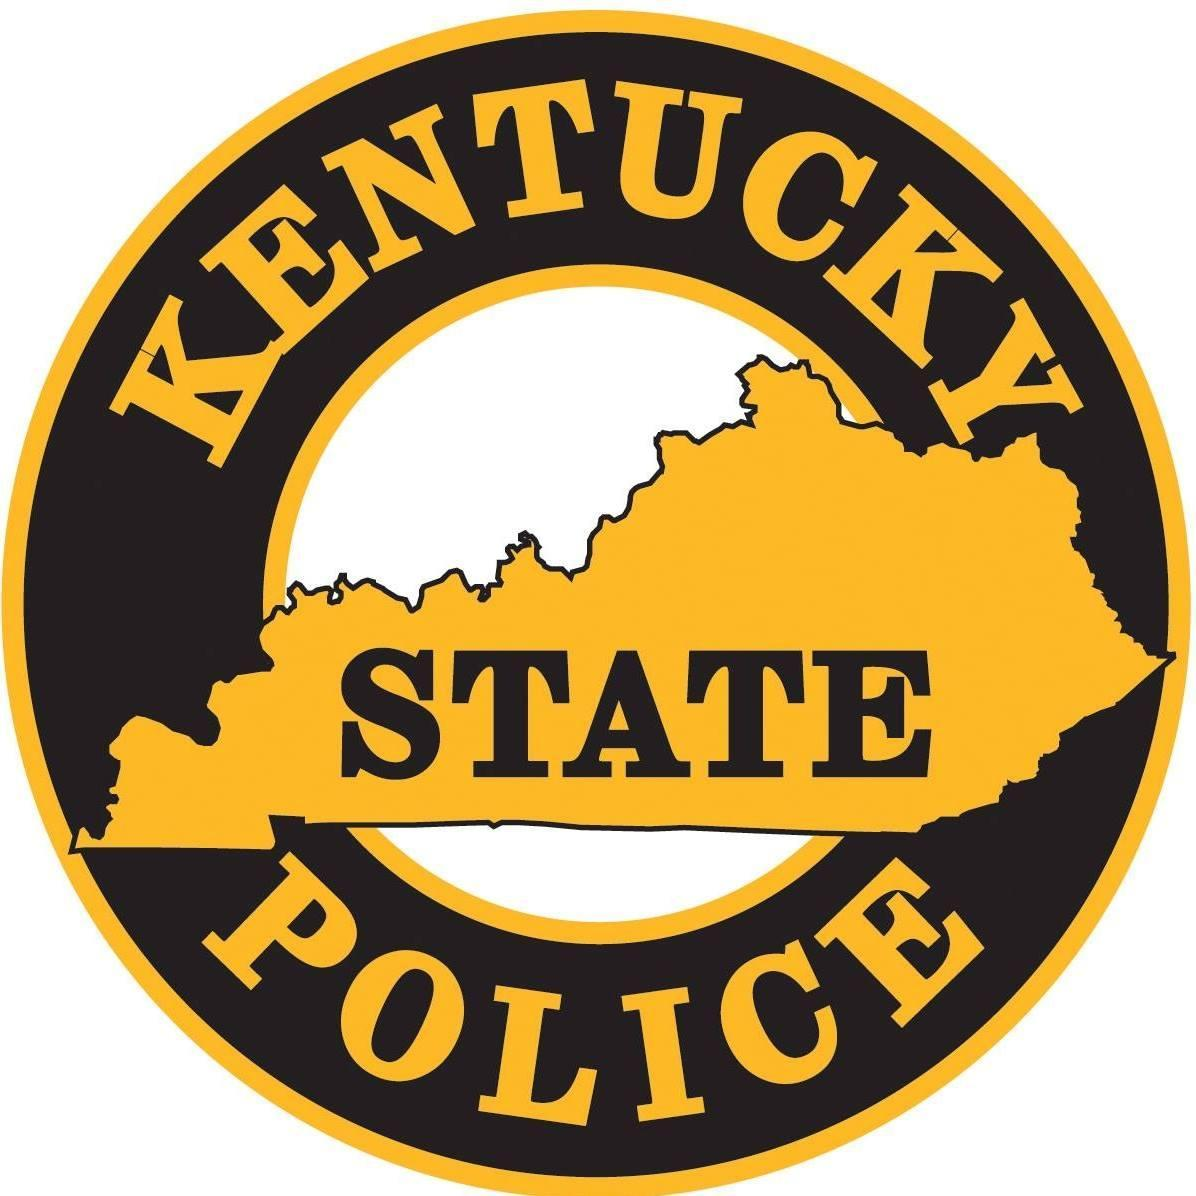 Taylor County Escapee Located And Arrested